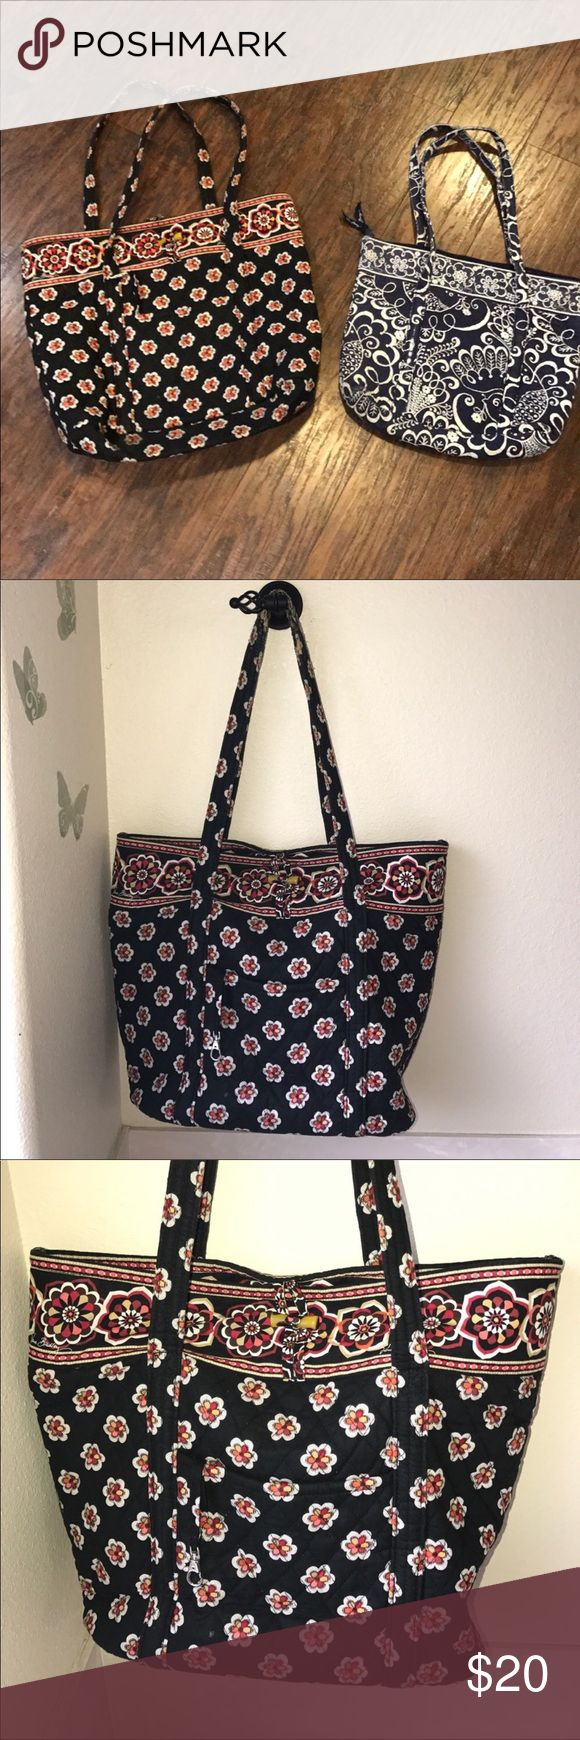 """Lot 2 Vera Bradley tote bags Lot Vera Bradley print tote bags Large black print tote bag has moderate wear on handle straps has some marks measures 18"""" long 14.5"""" tall. 6"""" wide strap drop 12.5"""" Blue tote has some wear on corners & rim areas measures 14.5 inches long 12"""" tall 3"""" wide strap drop 11.5"""" loved condition sold as is Vera Bradley Bags Totes"""